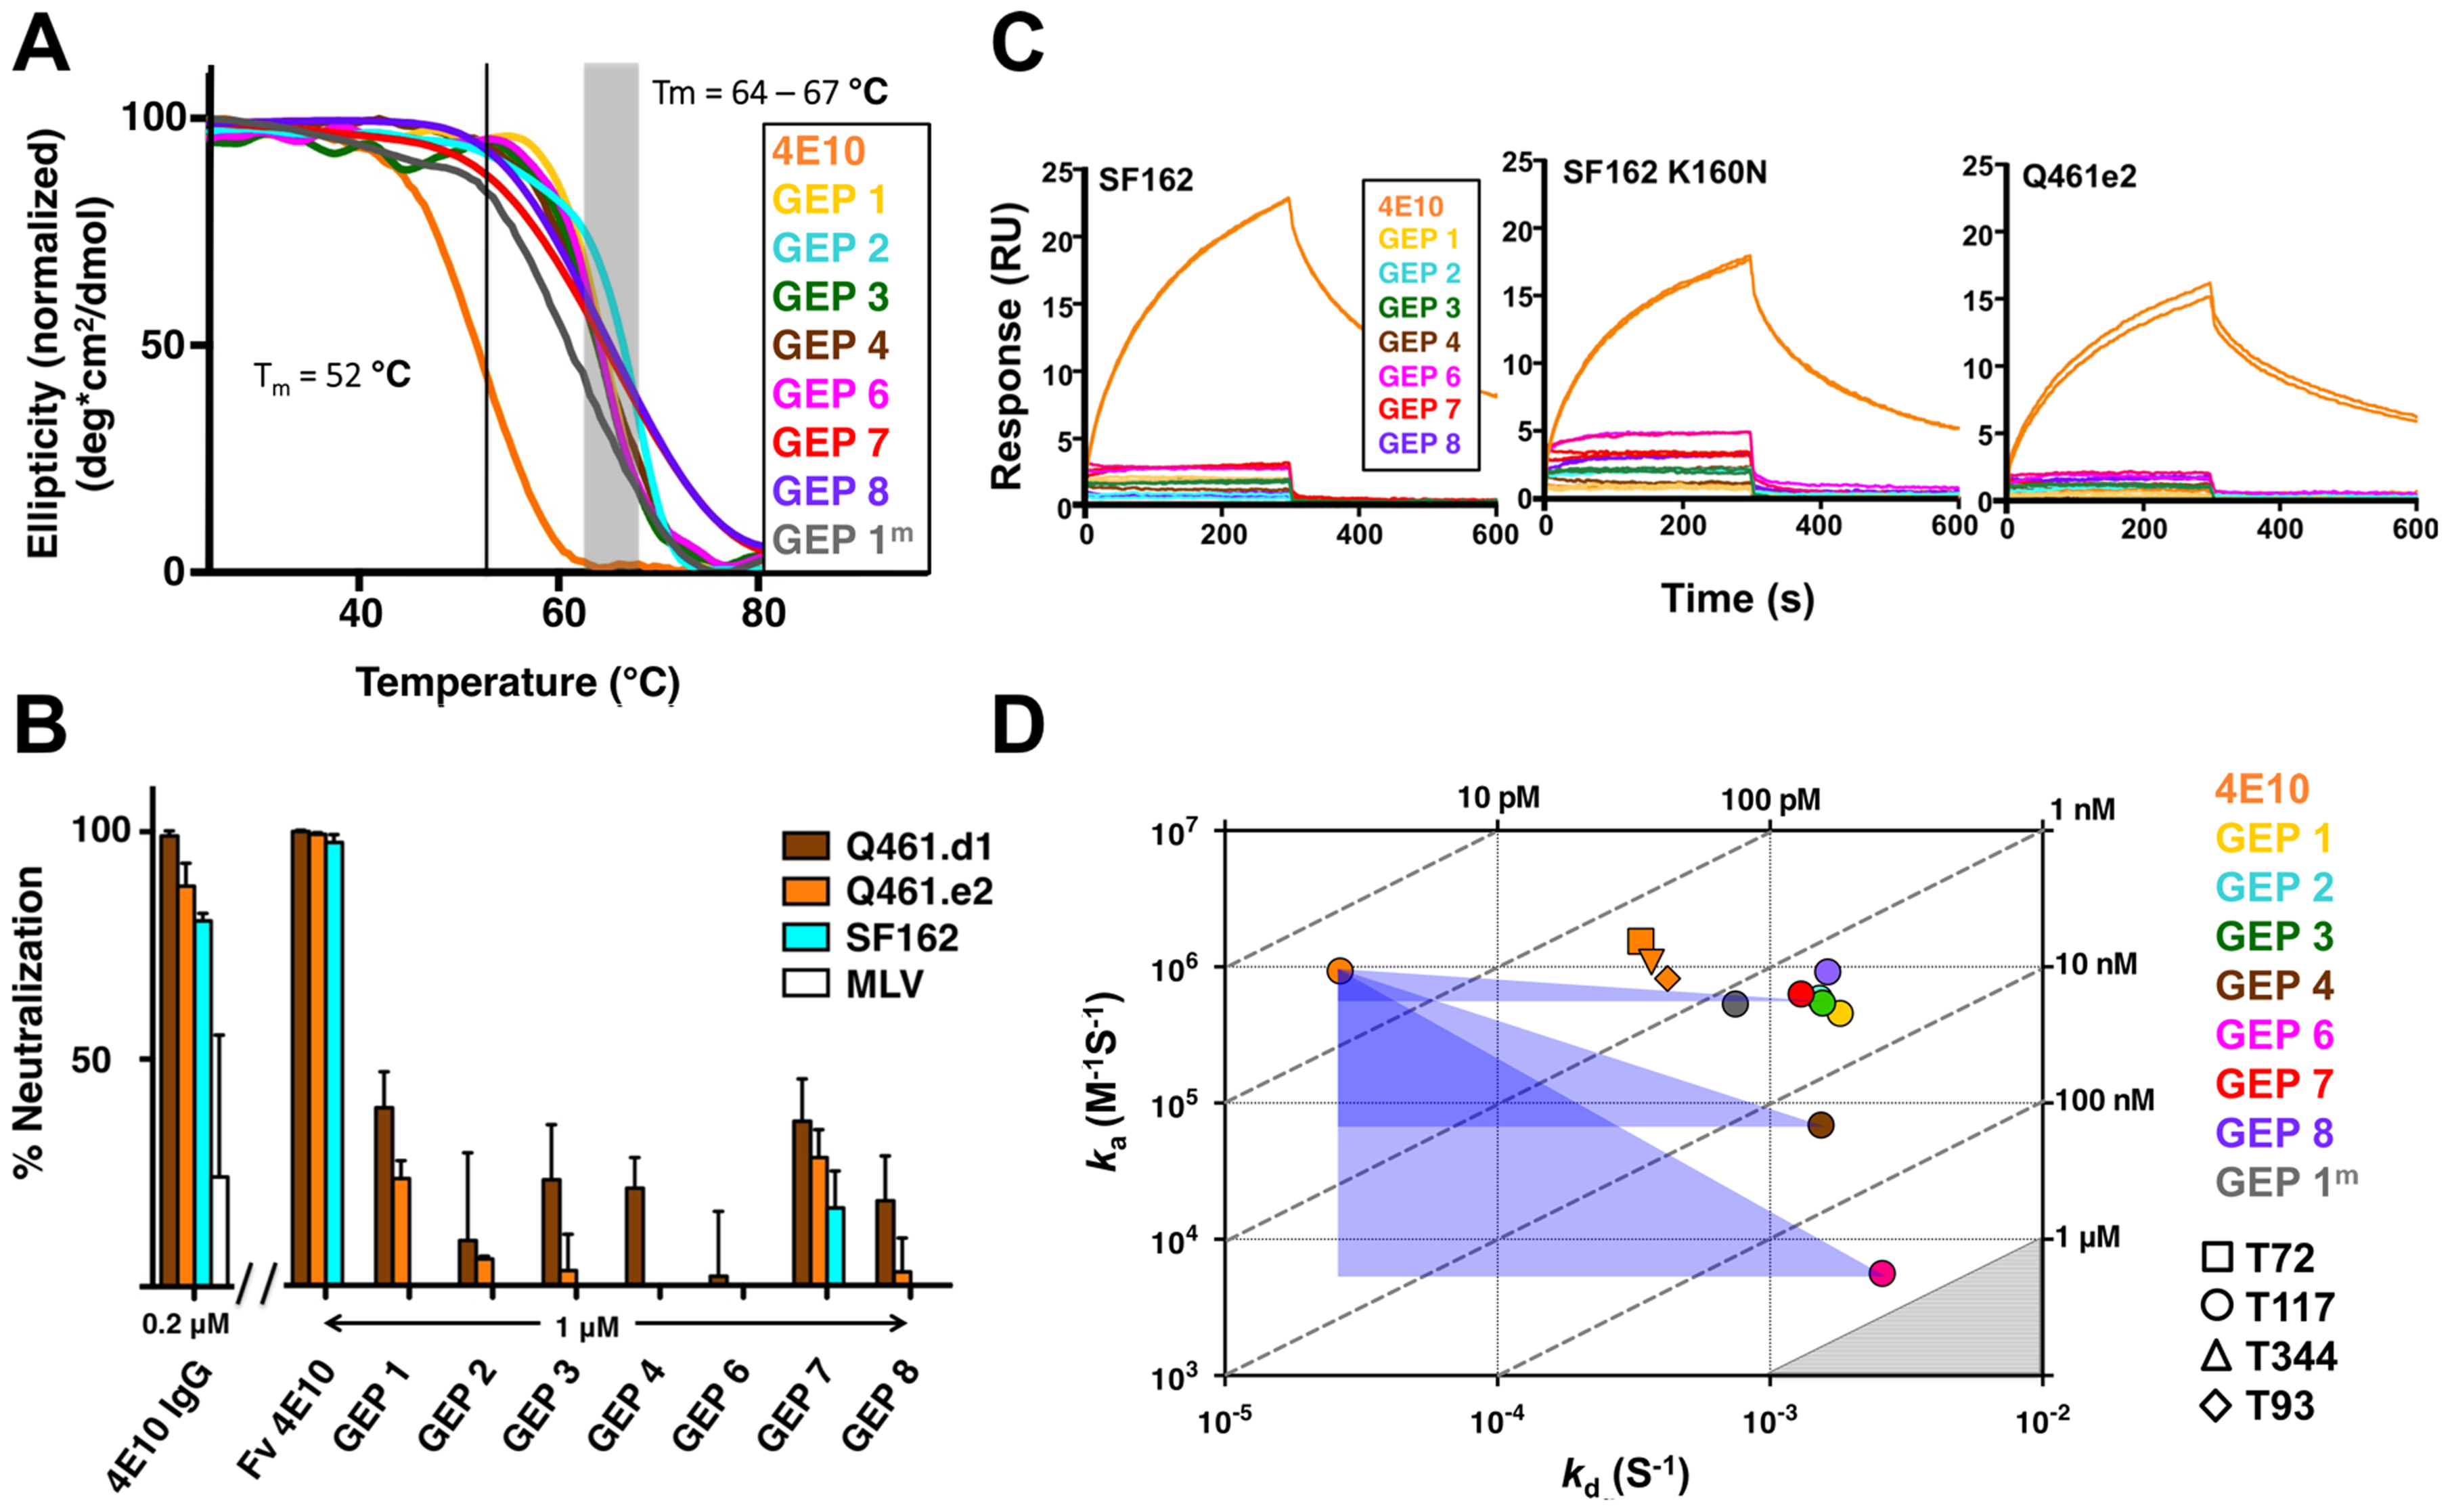 Biophysical and functional characterization of an ensemble of 4E10 GEPs.